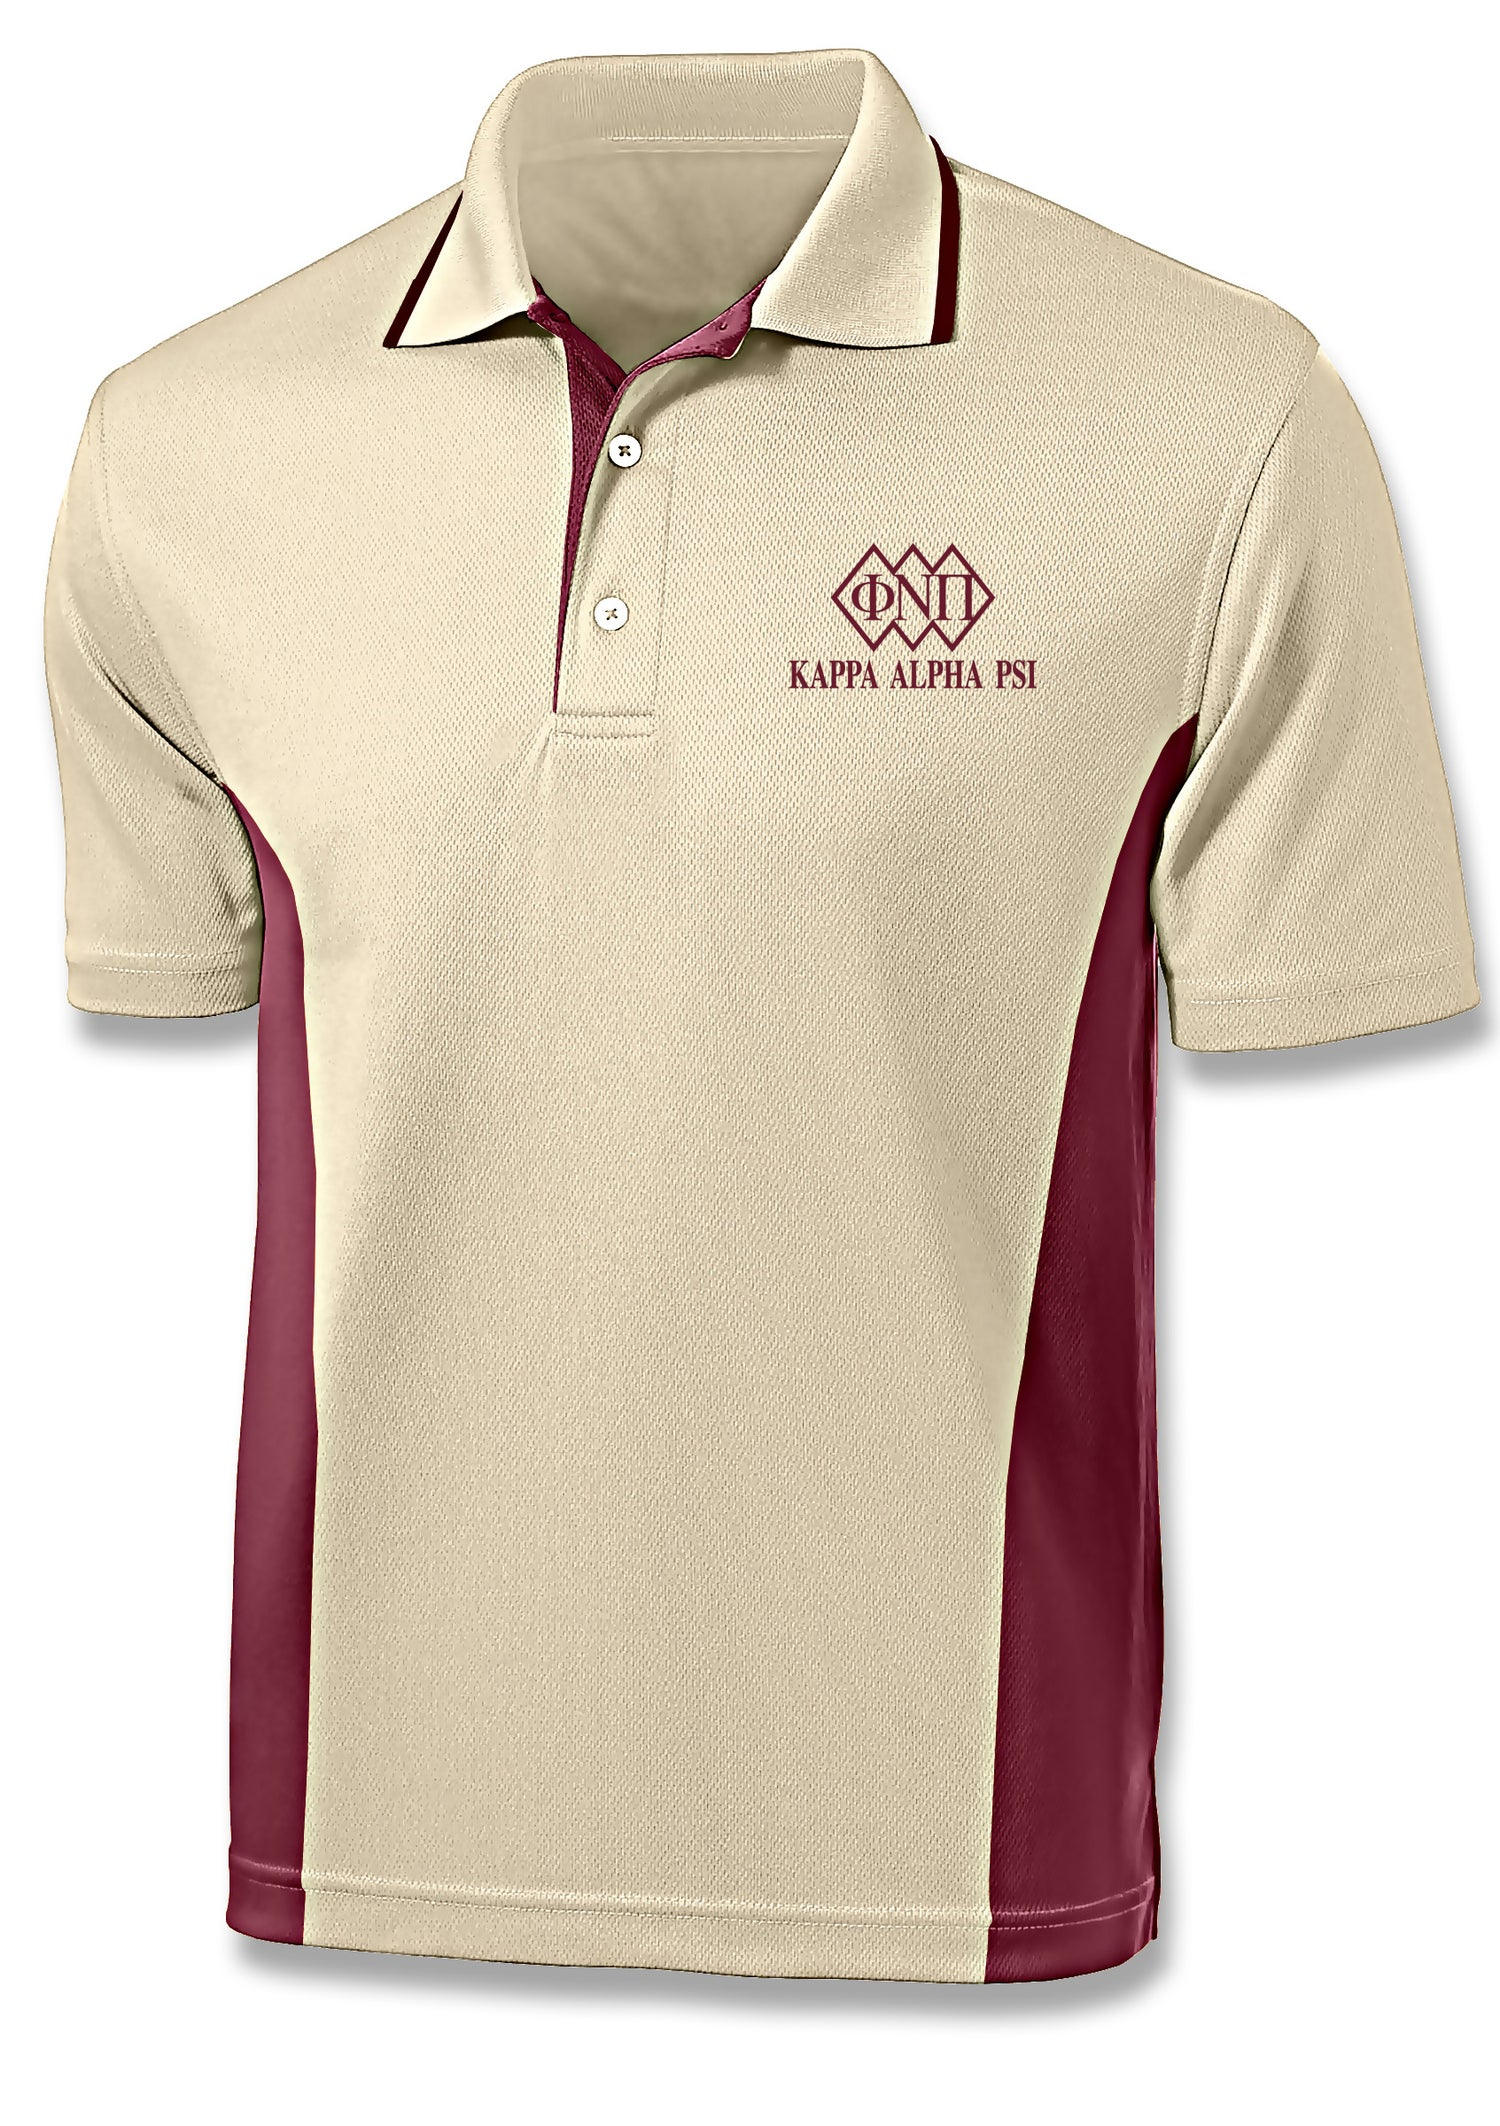 Image of ΦNΠ 3-Diamond Design Cream/Crimson Sport Polo